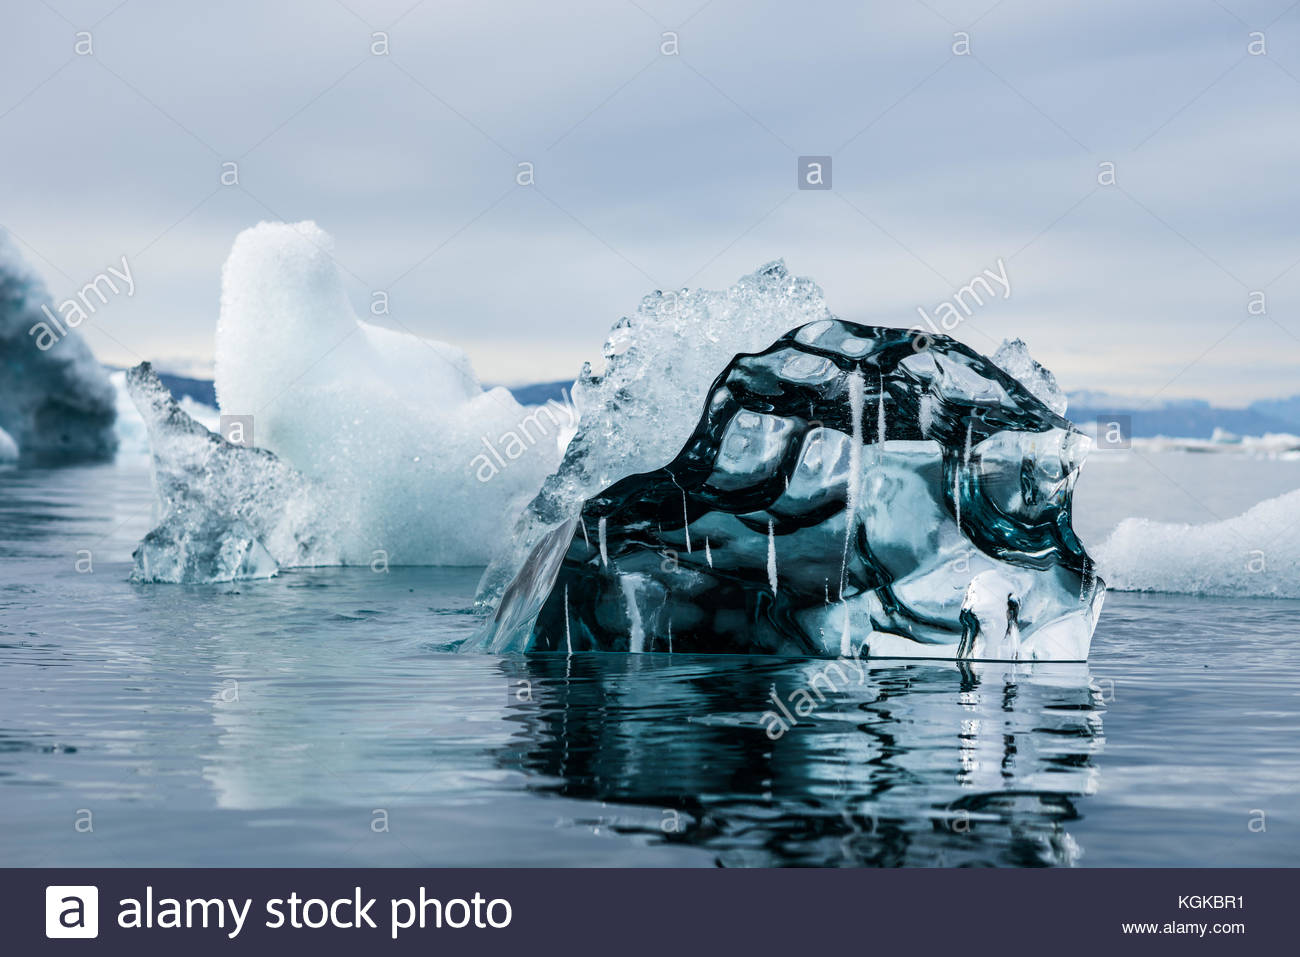 A transparent iceberg floating in the water. - Stock Image